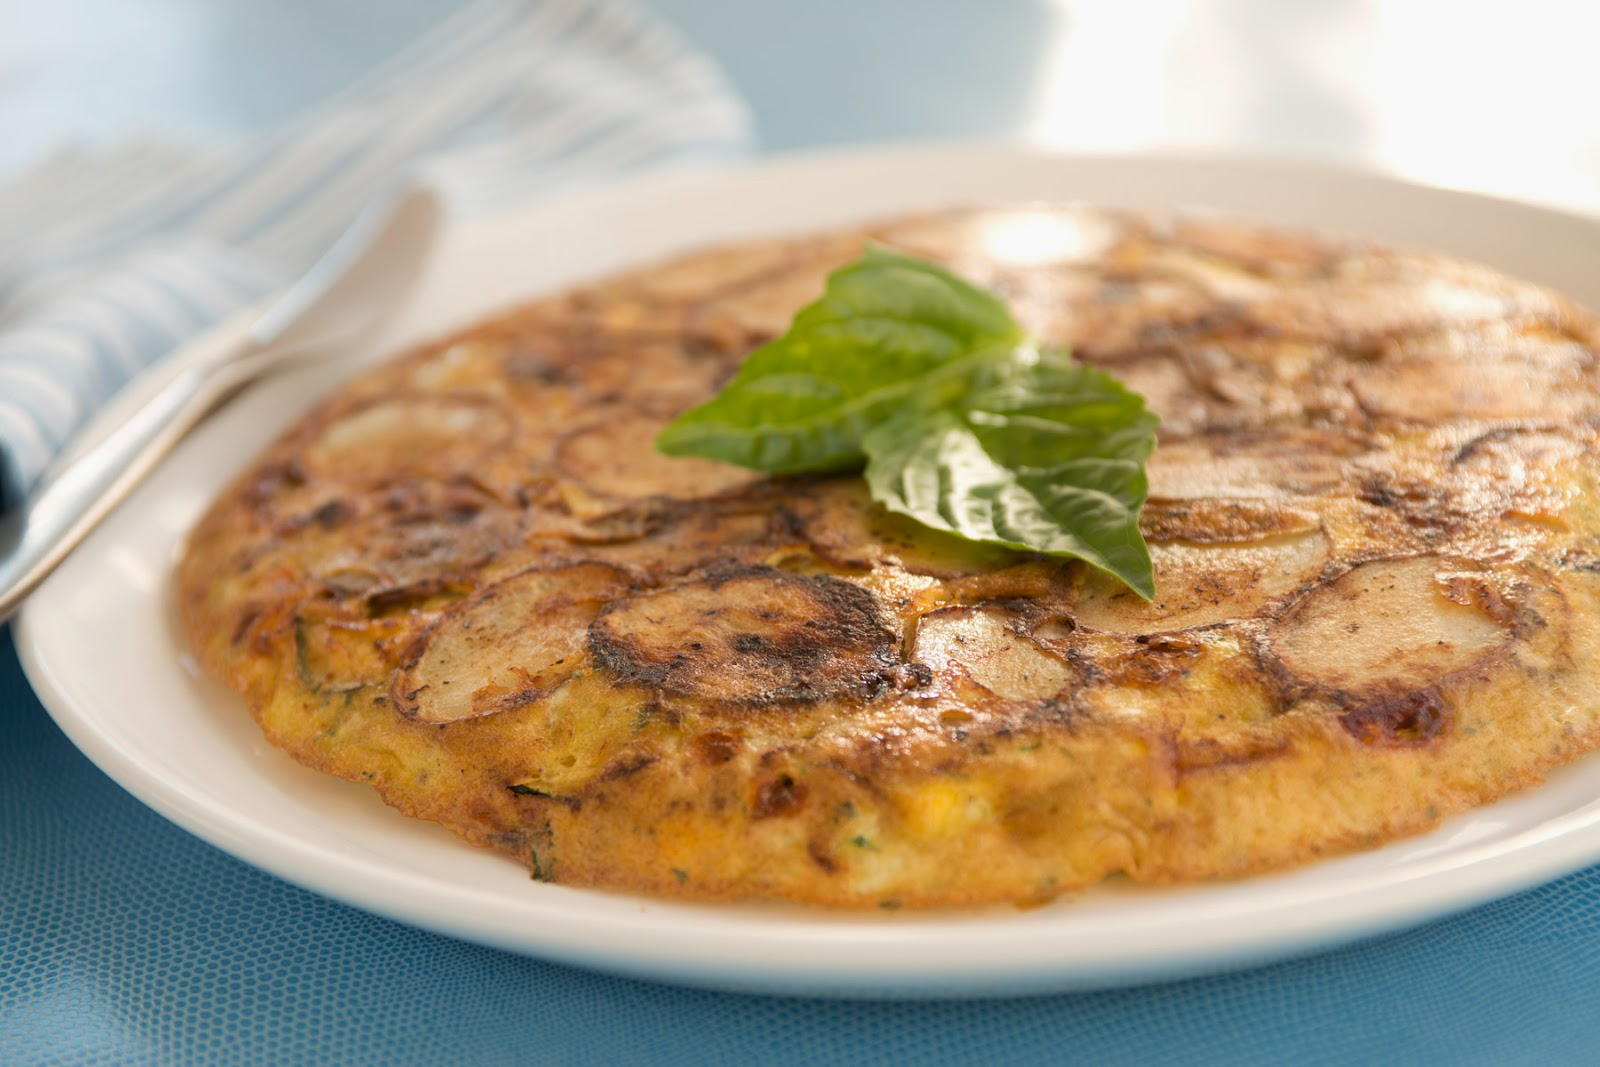 Meals, Heels, and Cocktails: Zucchini & Potato Frittata